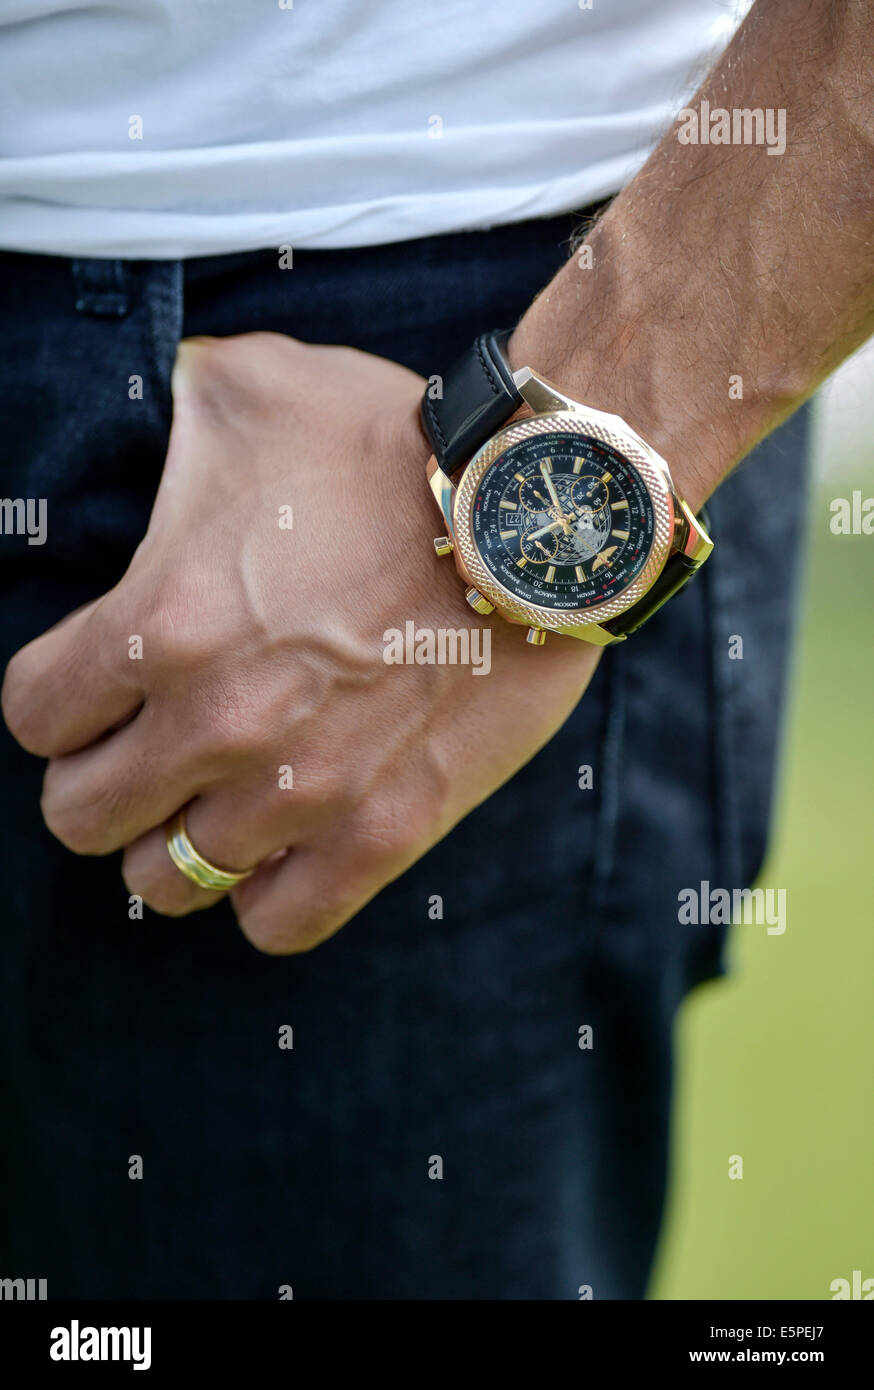 A man's hand with a Breitling watch and a wedding ring - Stock Image